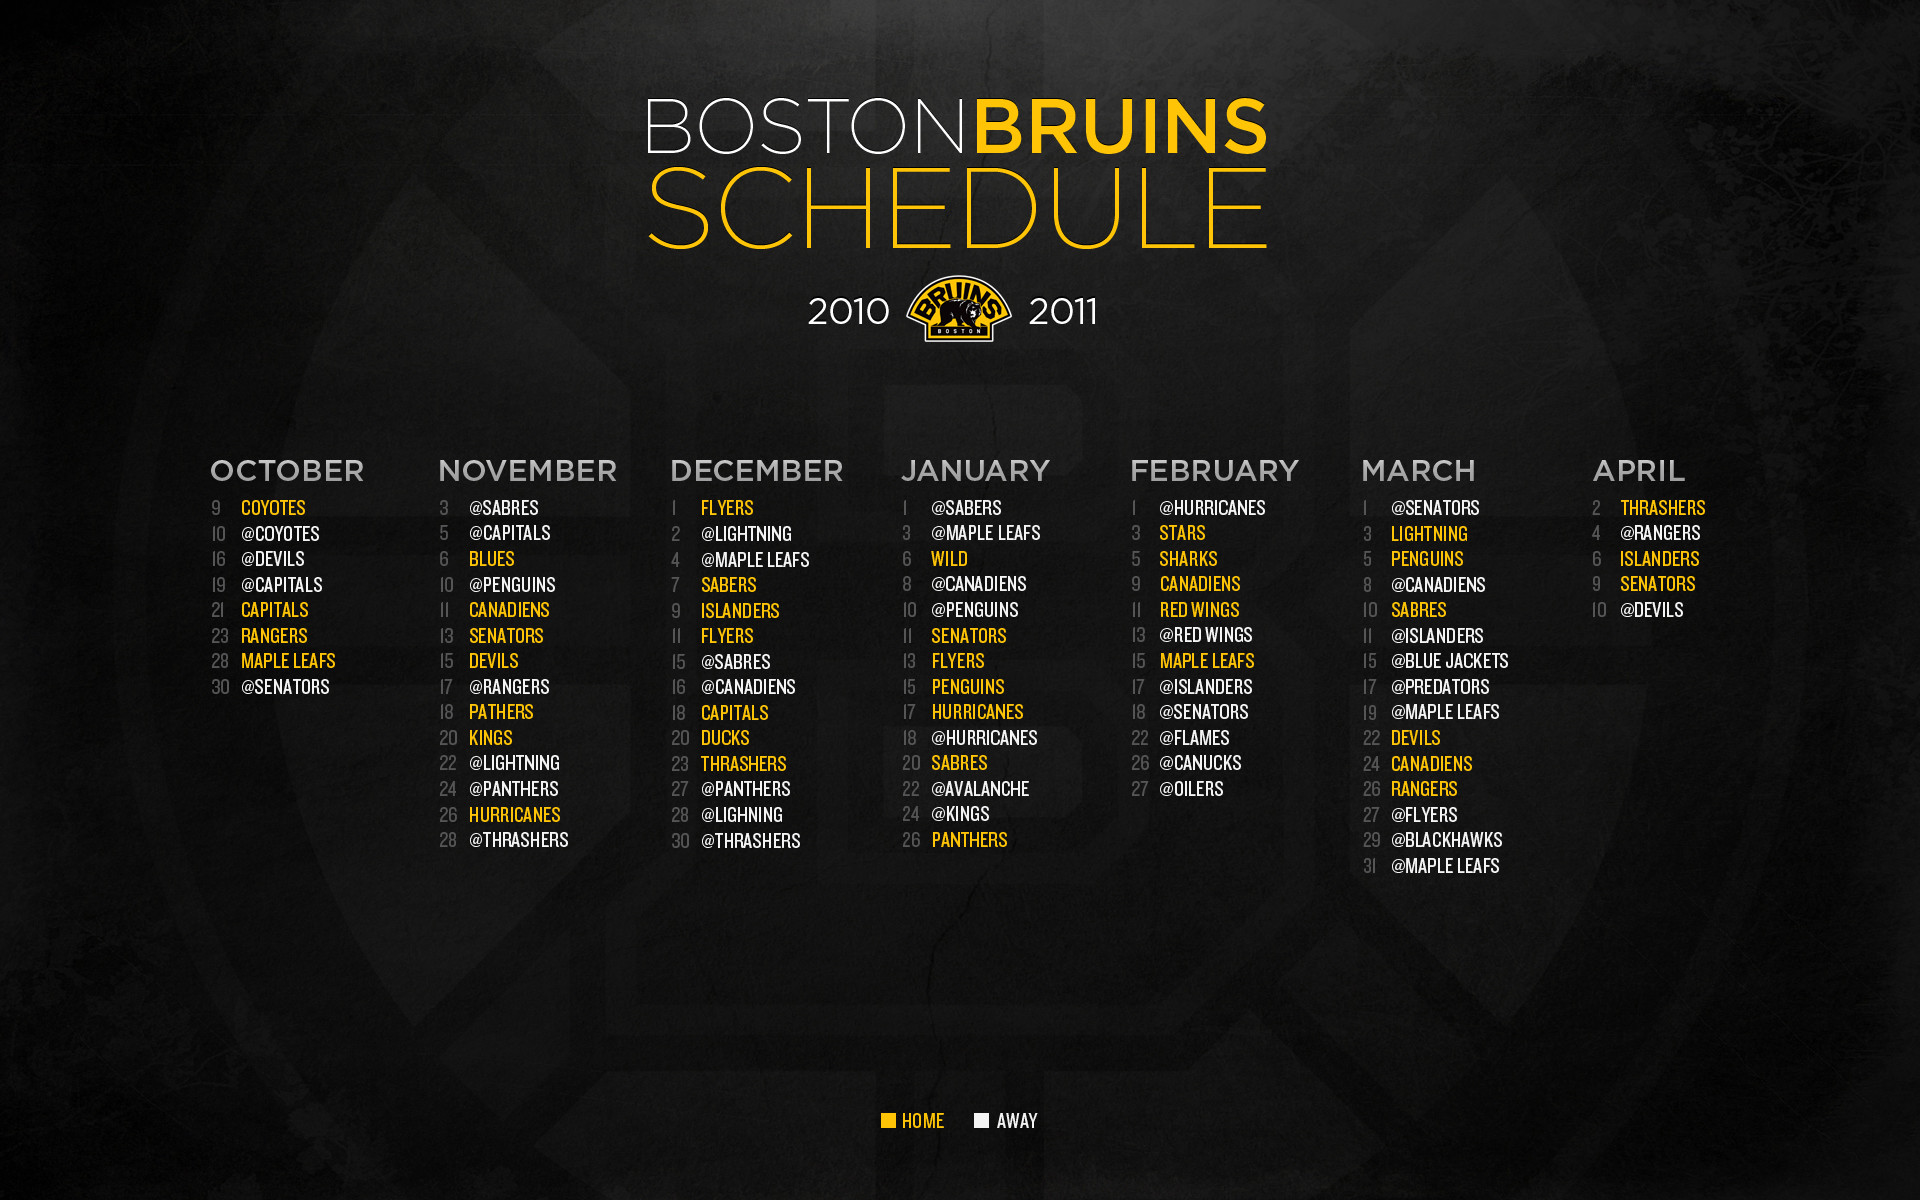 Who are the Bruins playing? by Paul Kelley